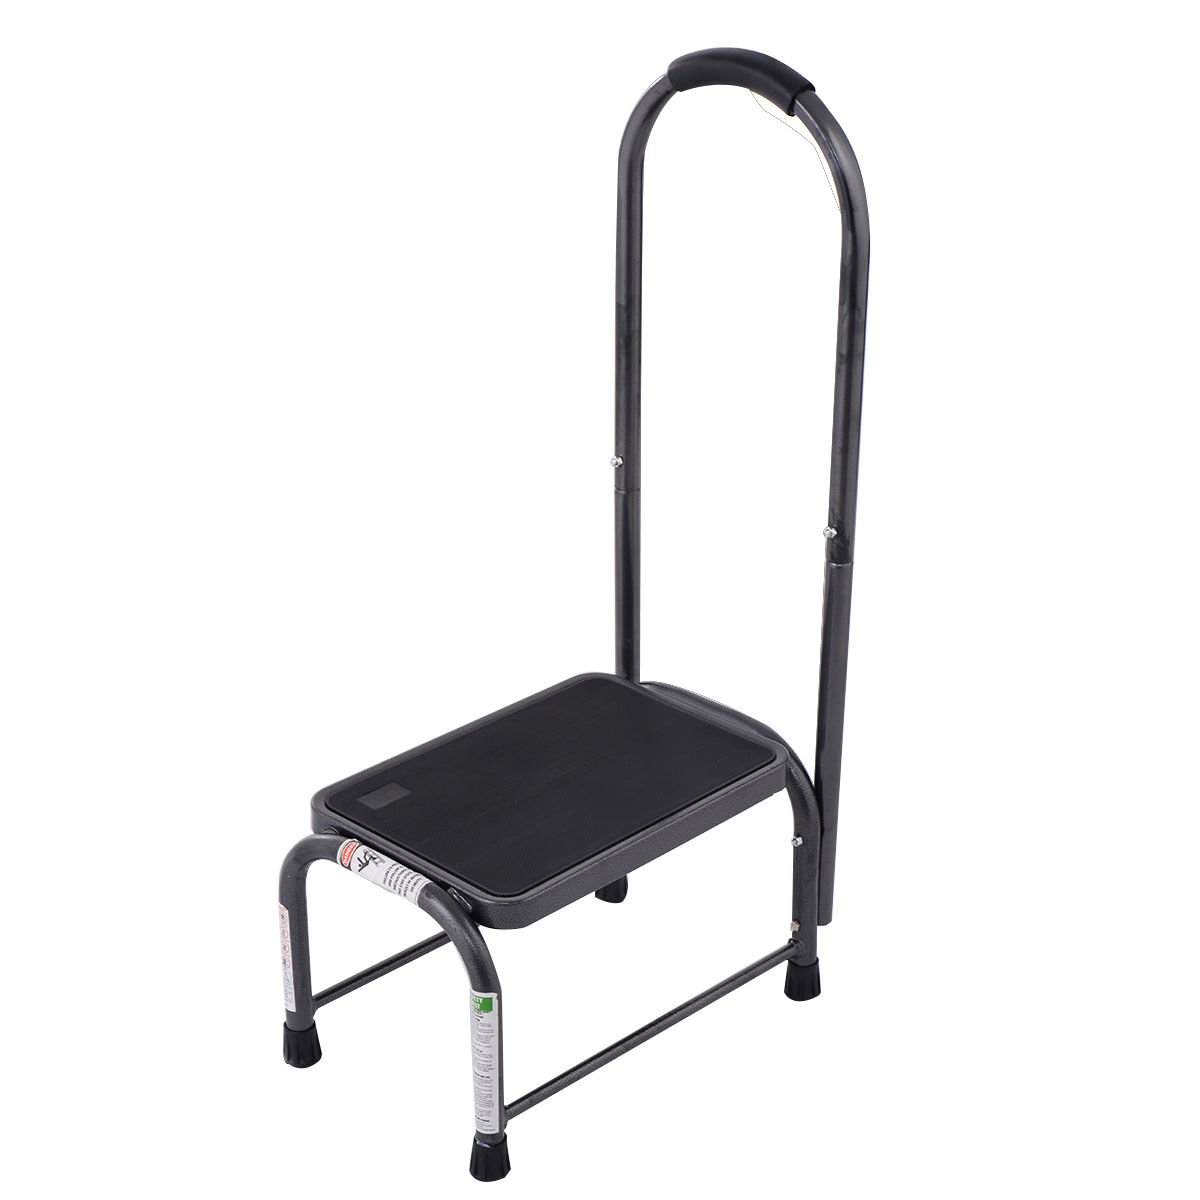 depot imagestep seat get seniors stool designtrong bus stools inspirations on step to for of elderly walmart size bath shower handicap chairs full picture home foreniors amazing the bartools